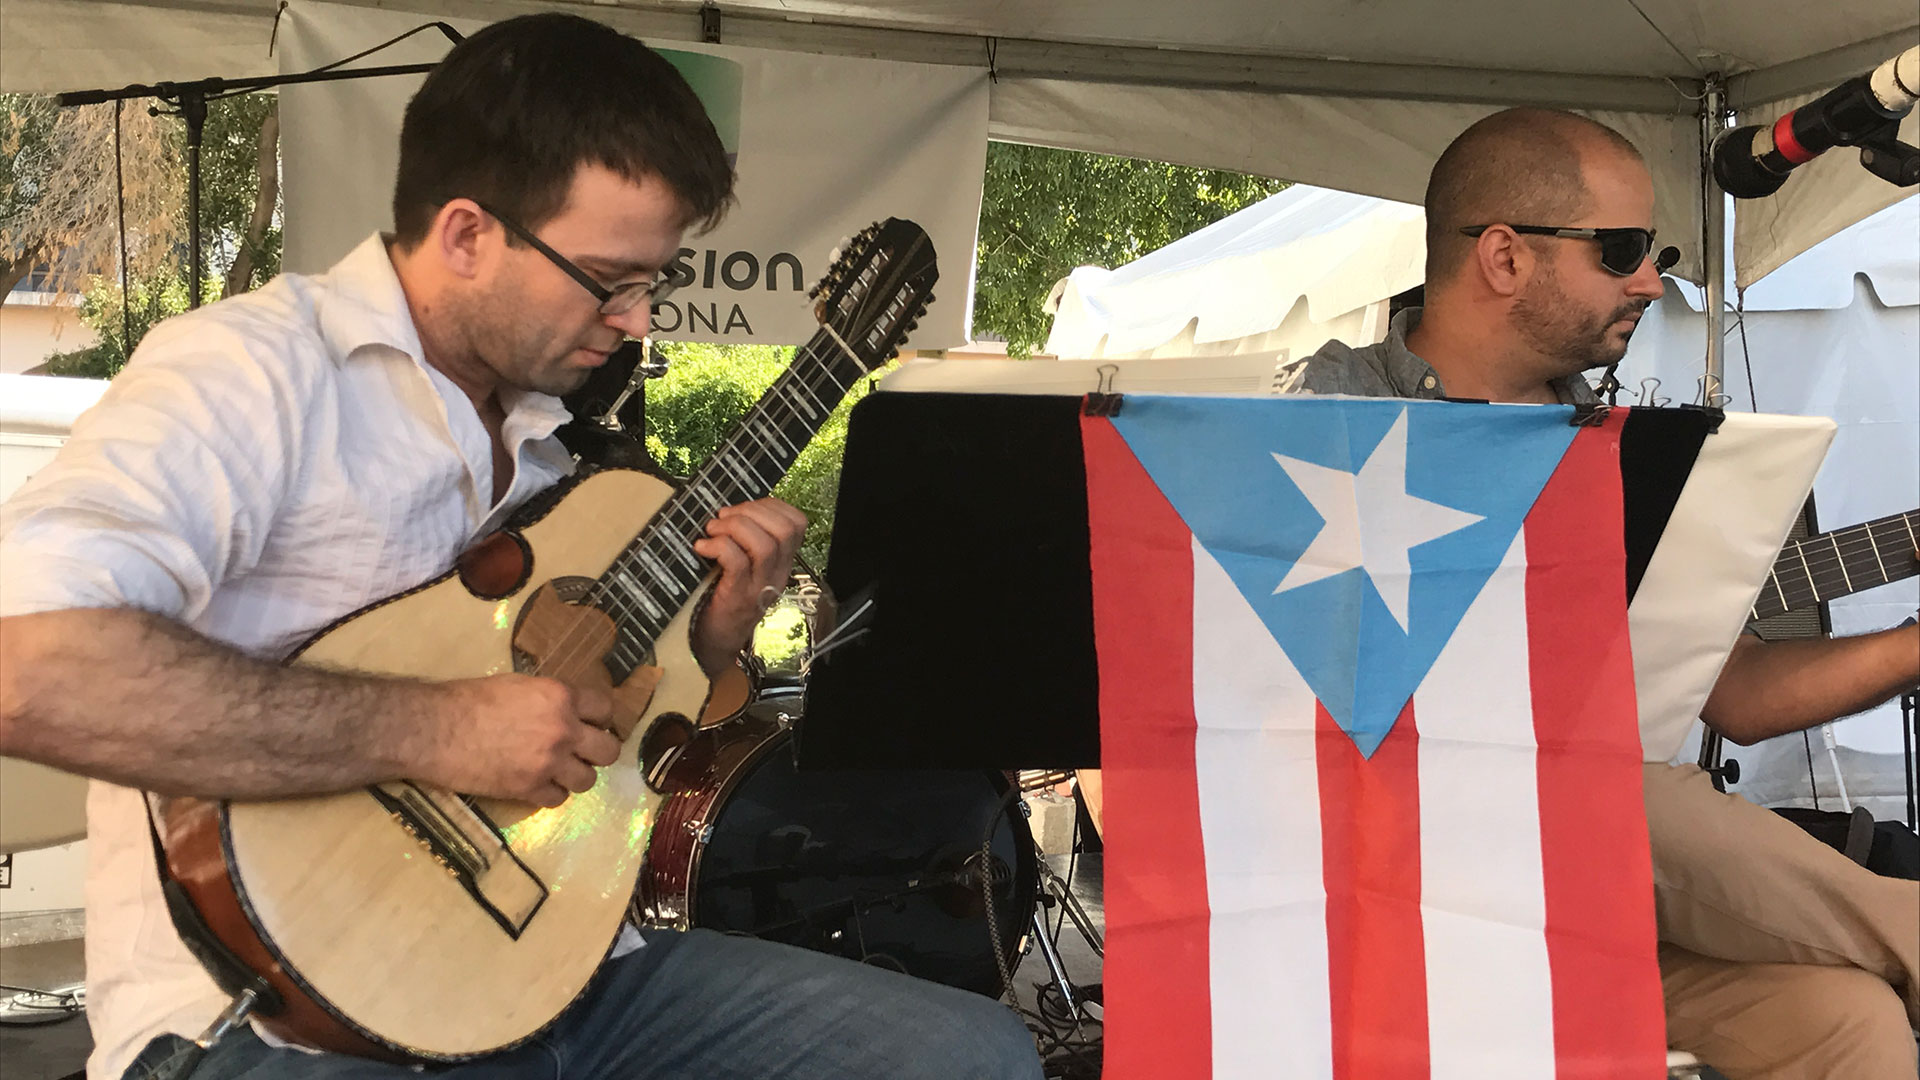 Alexis Rivera and José Luis Puerta are members of Grupo Rikén, which plays traditional music from Puerto Rico and other places.